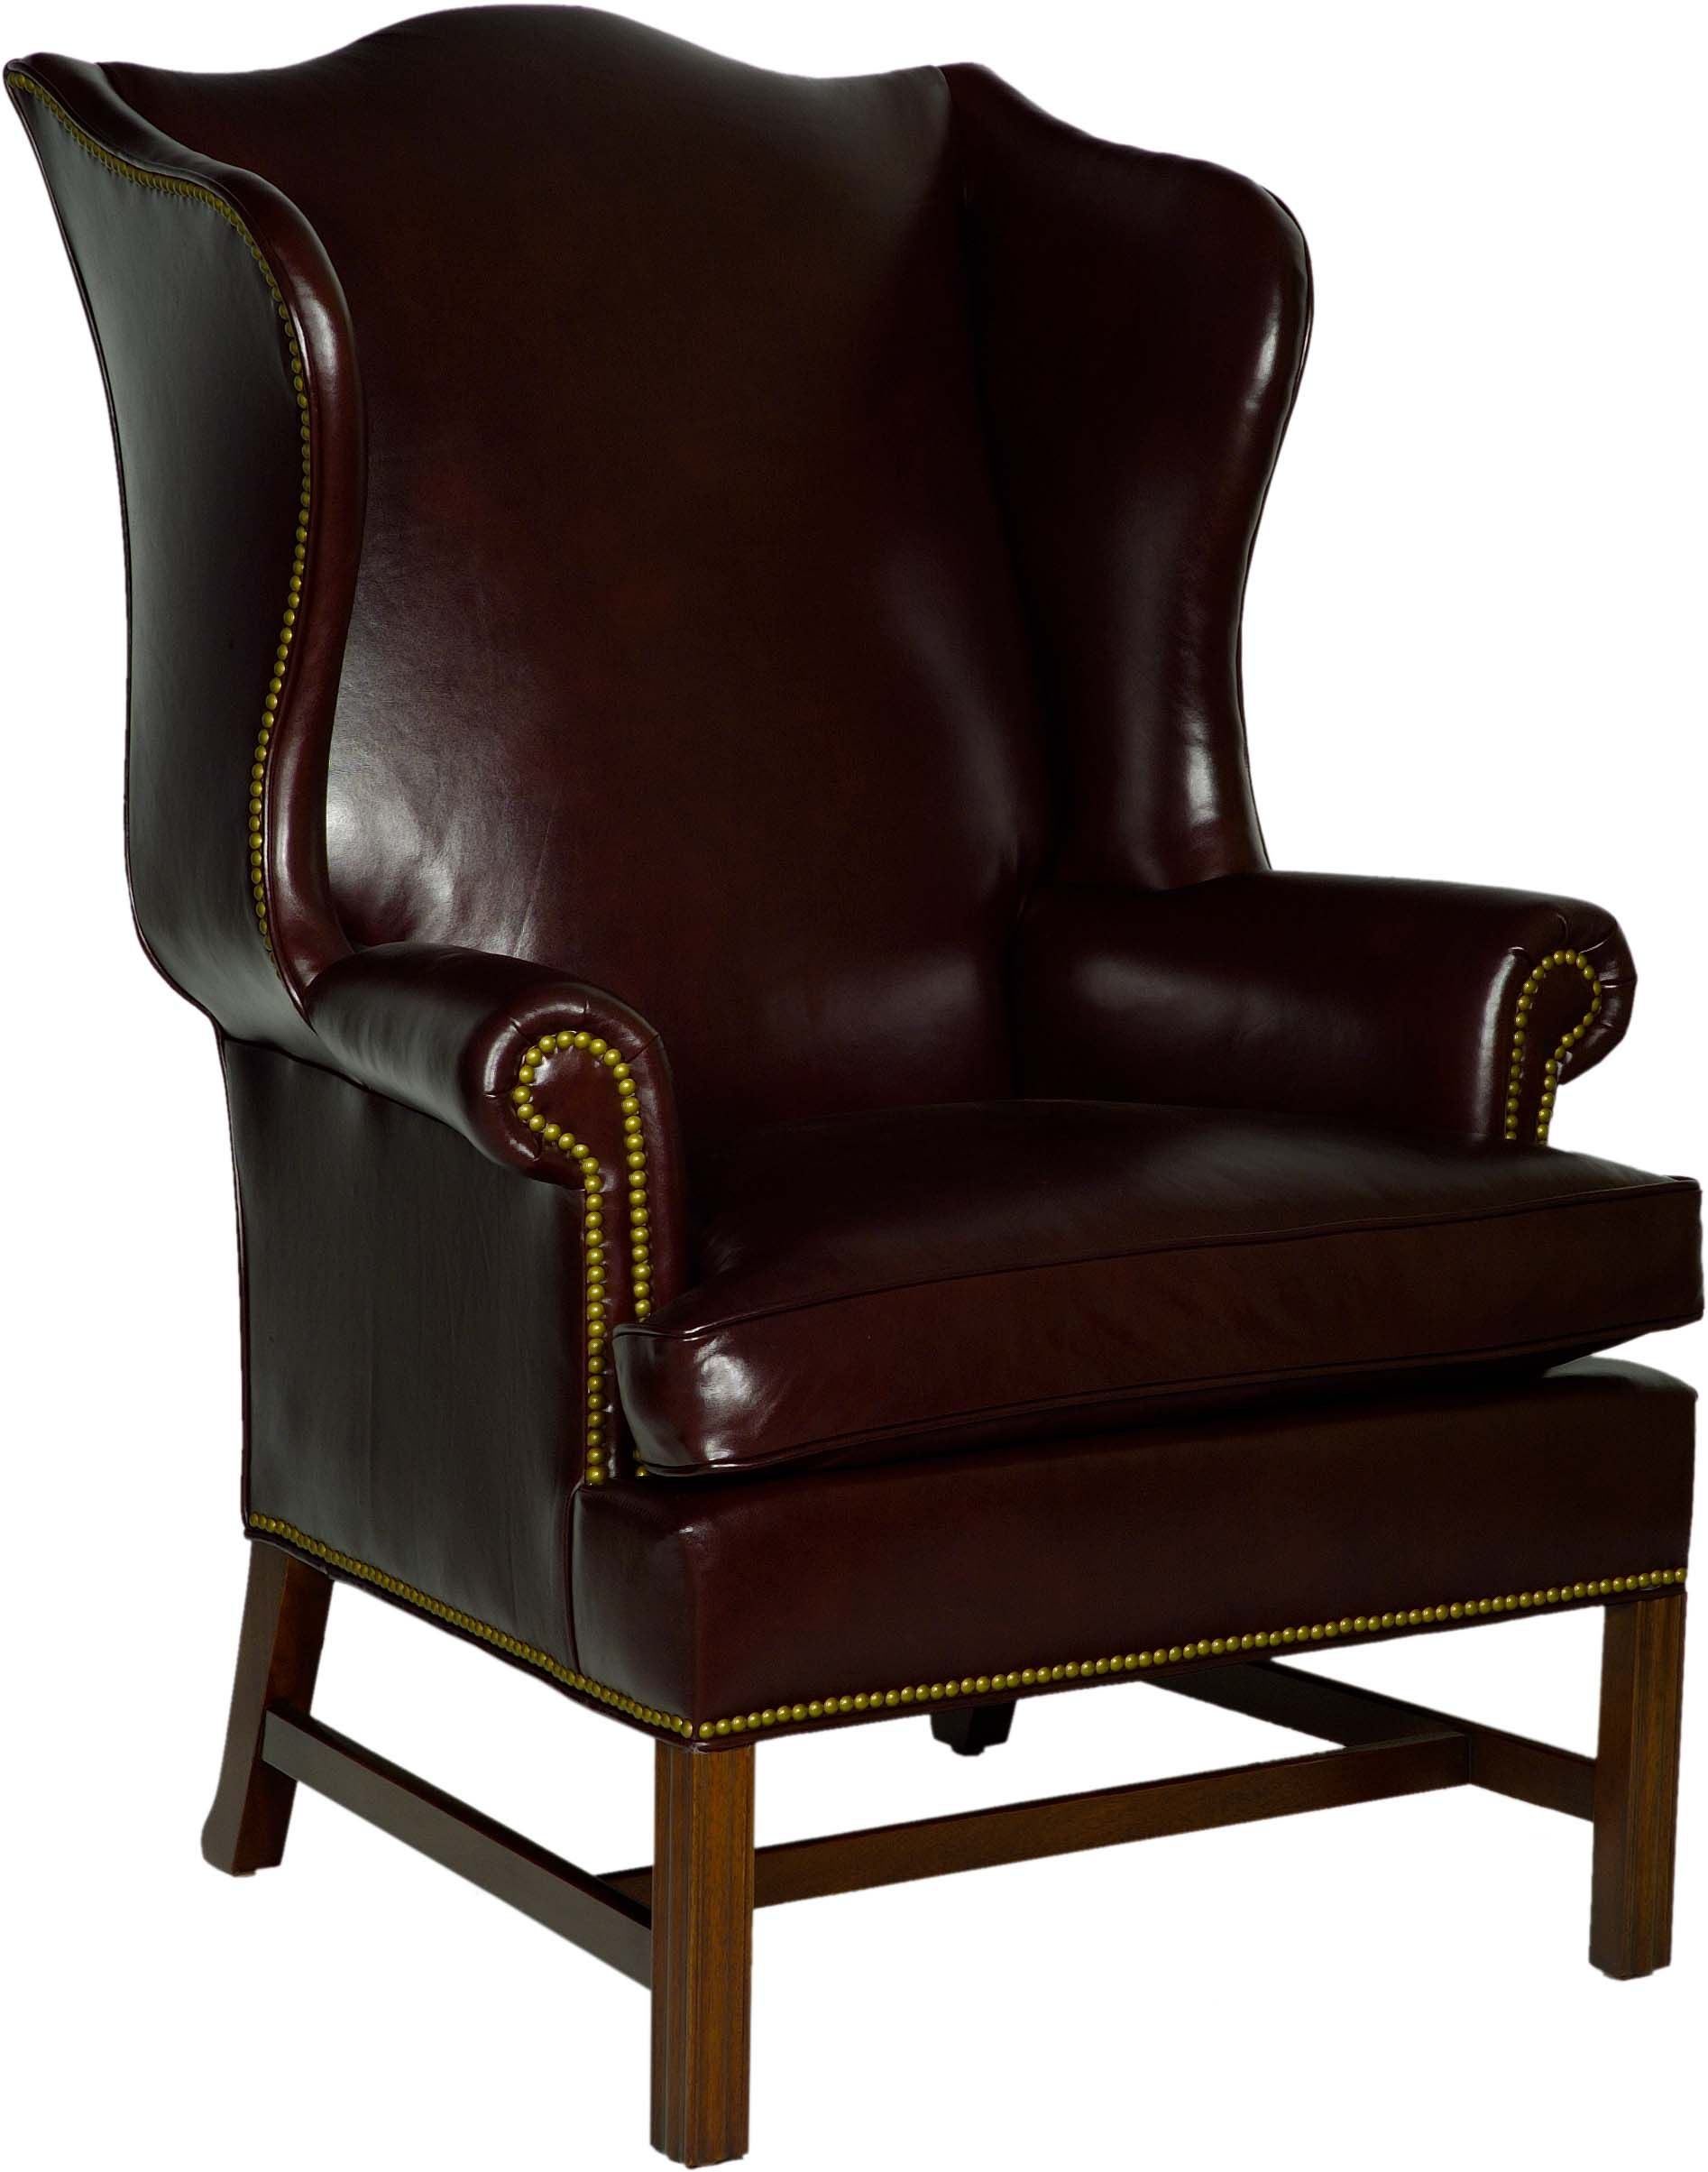 Queen Anne Wingback Chair Leather Behind The High Back Wing Armchairs And